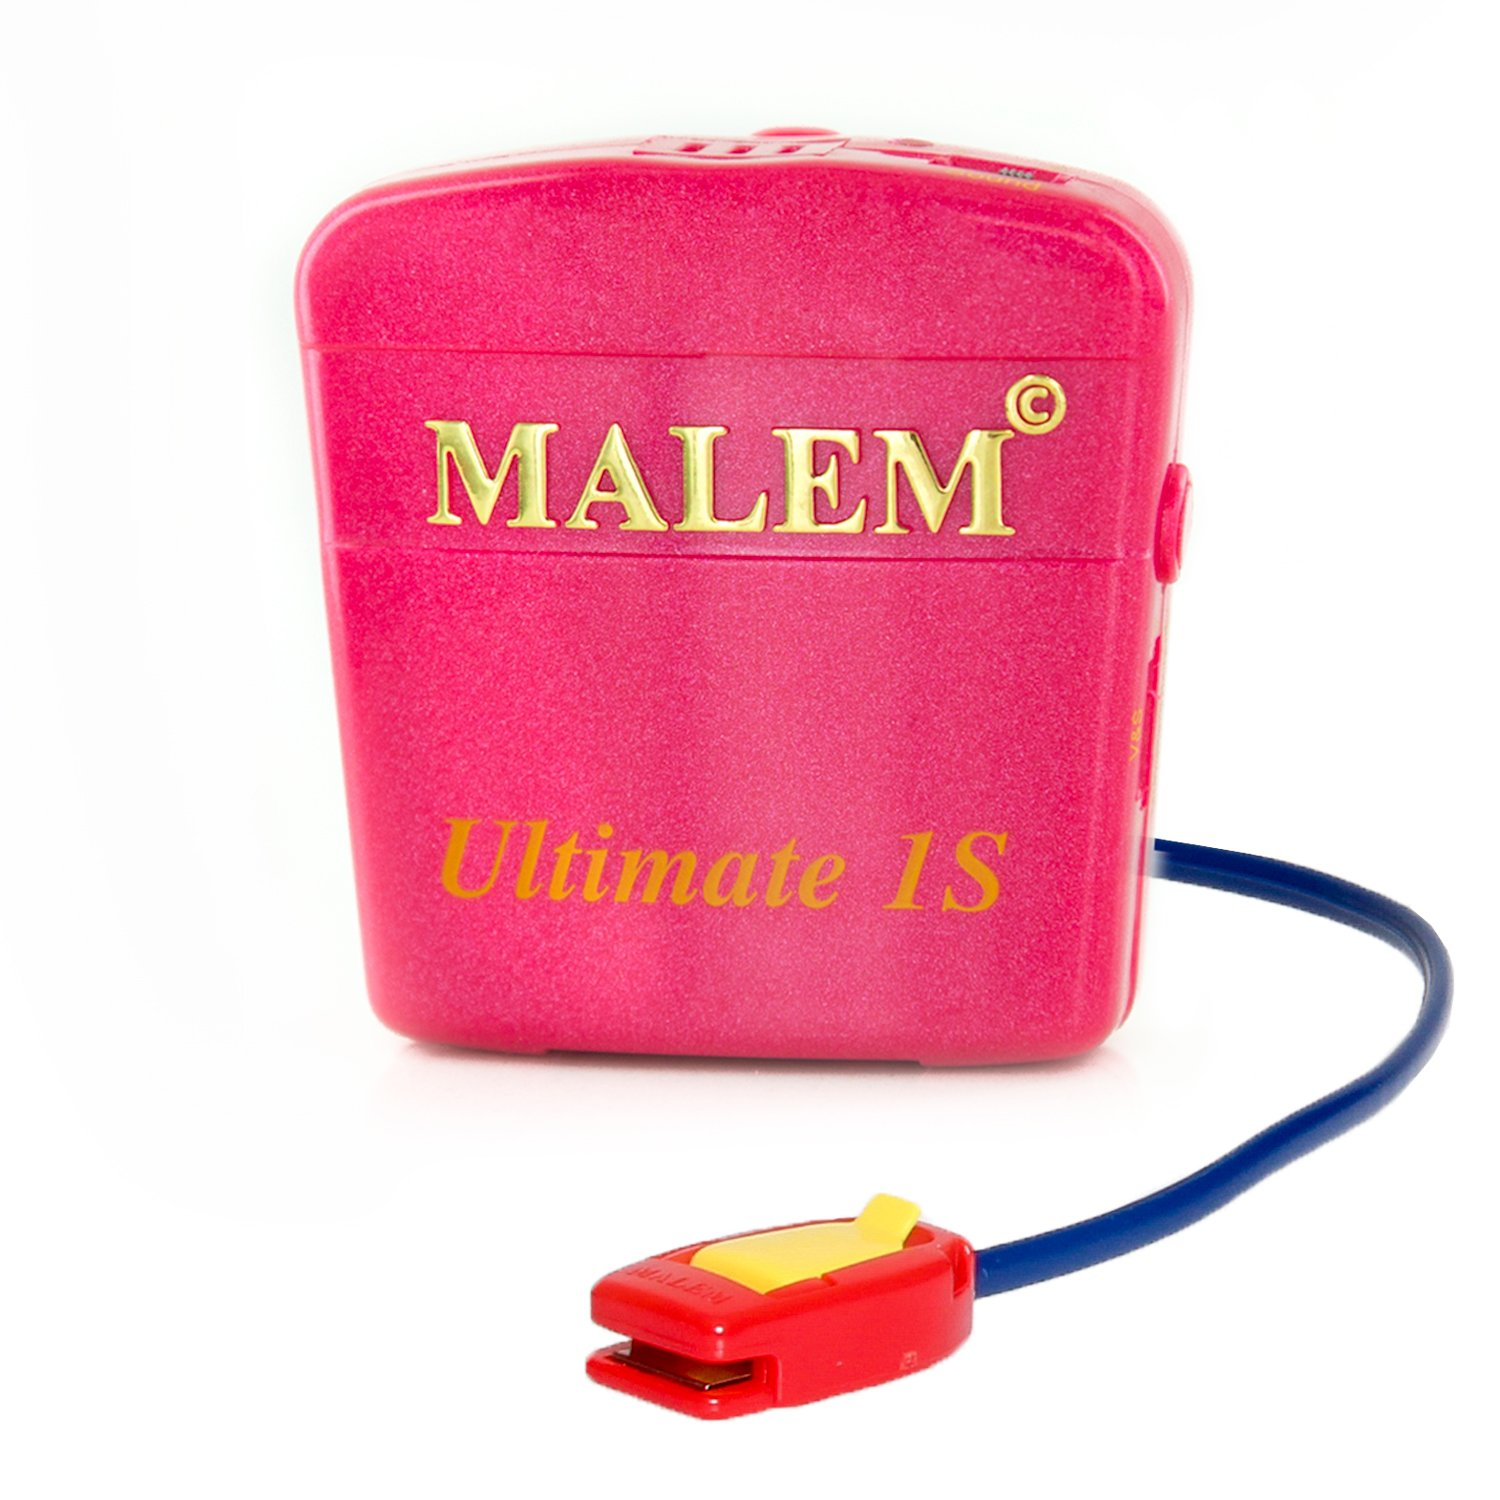 Malem Ultimate PRO Selectable Magenta Bedwetting Alarm with Vibration - Magenta by Malem